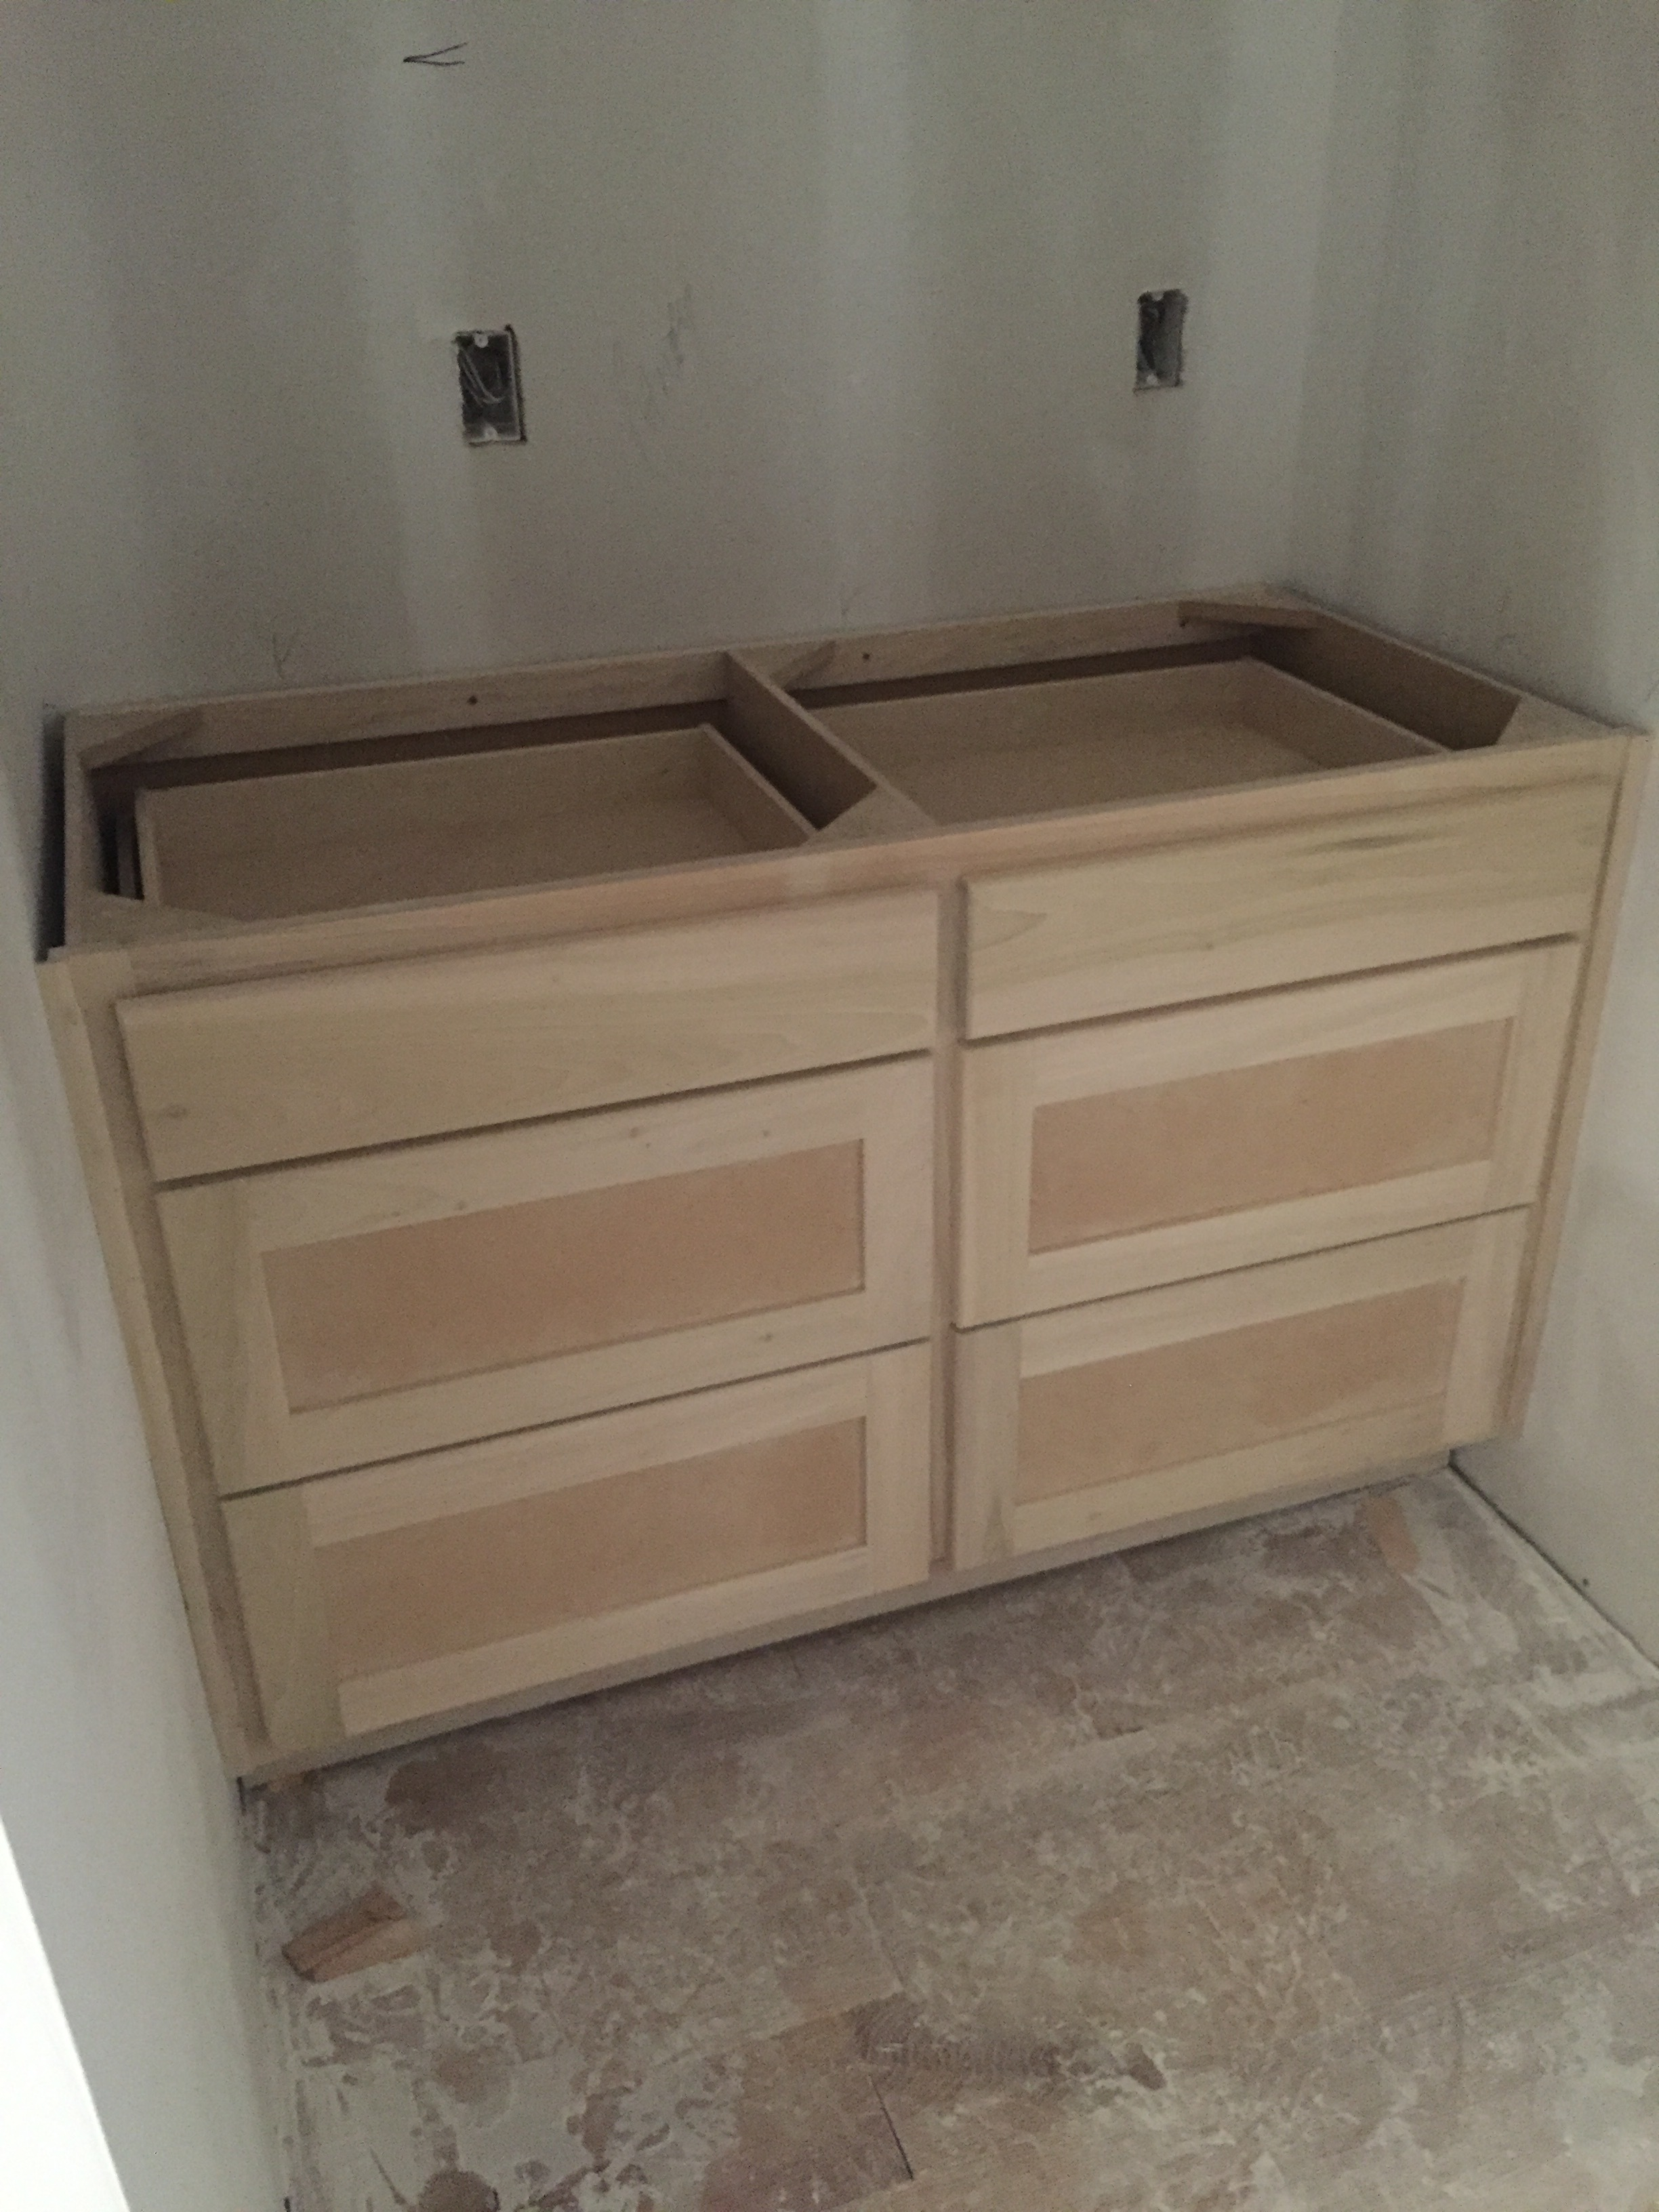 Coffee bar in our pantry, there will be large open shelves above